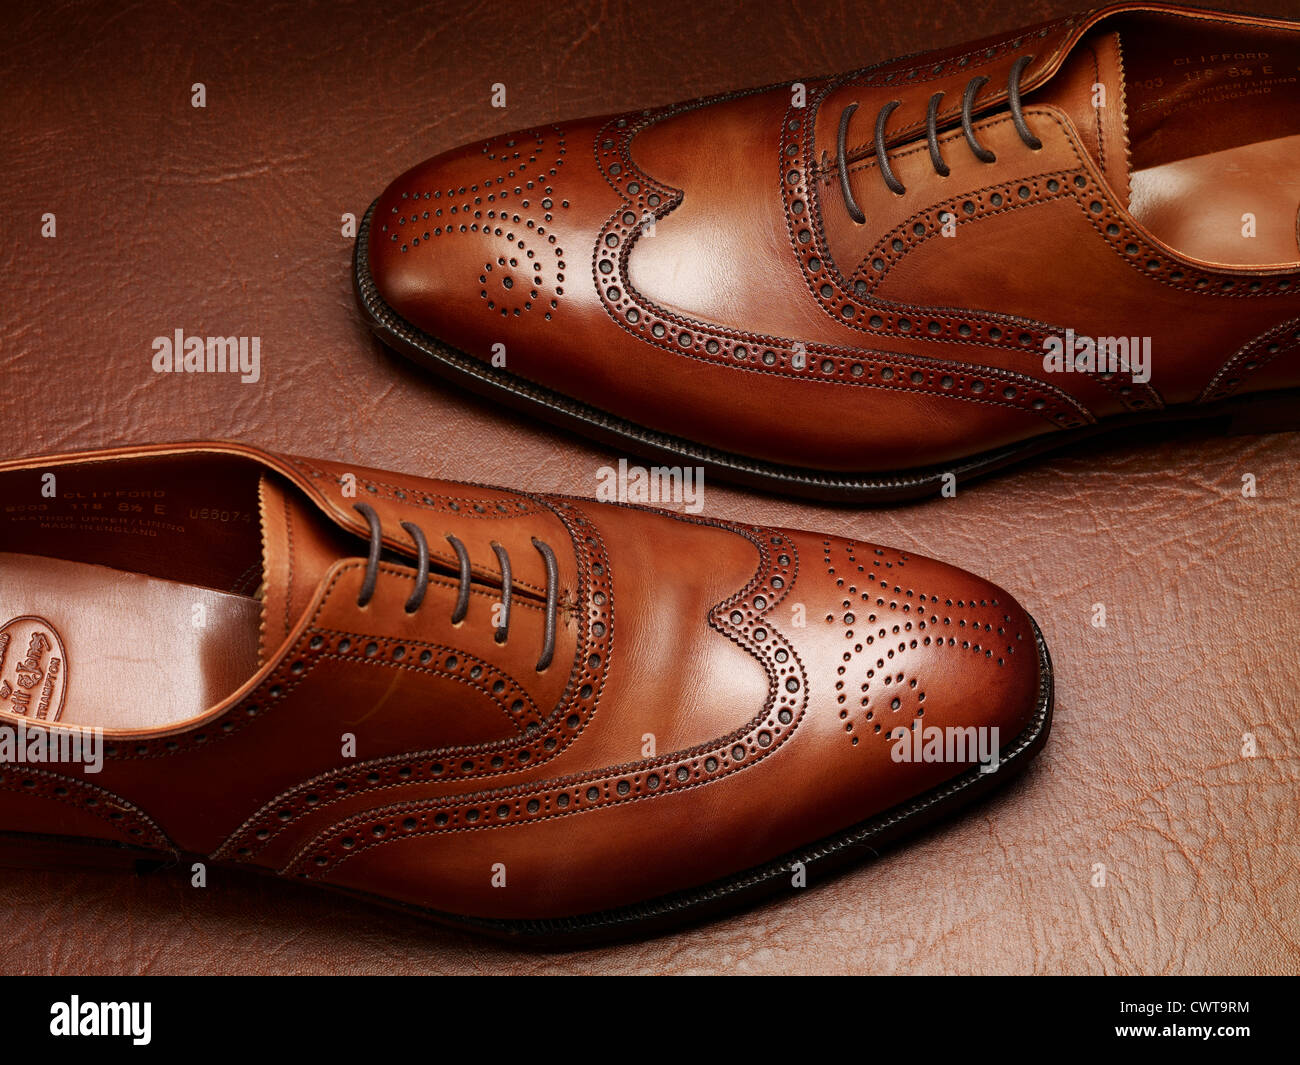 7a267b1639 Expensive luxory Brown leather brogue shoes on a vintage leather suitcase